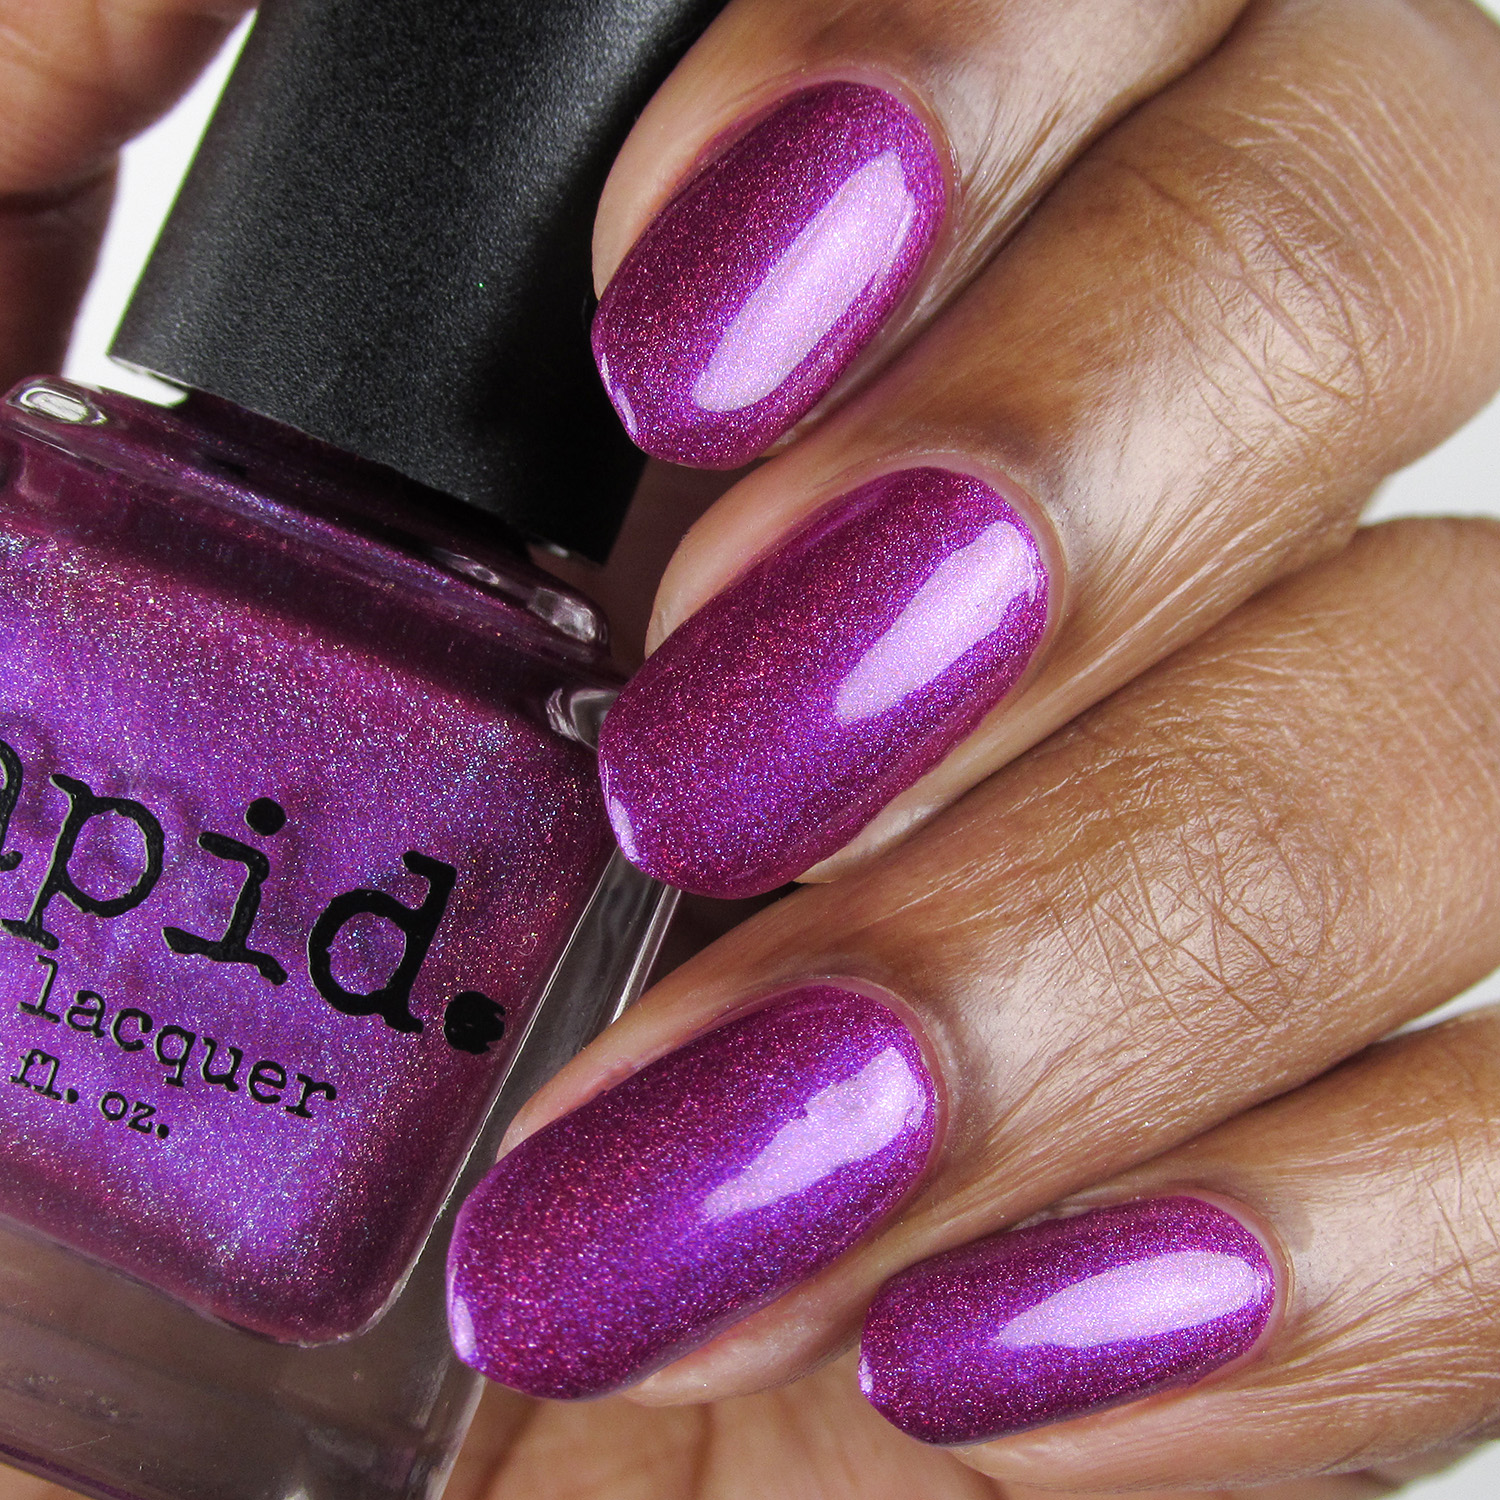 Hostile - bottle - Vapid Lacquer - April 2018 - Spring release - berry purple - linear holographic